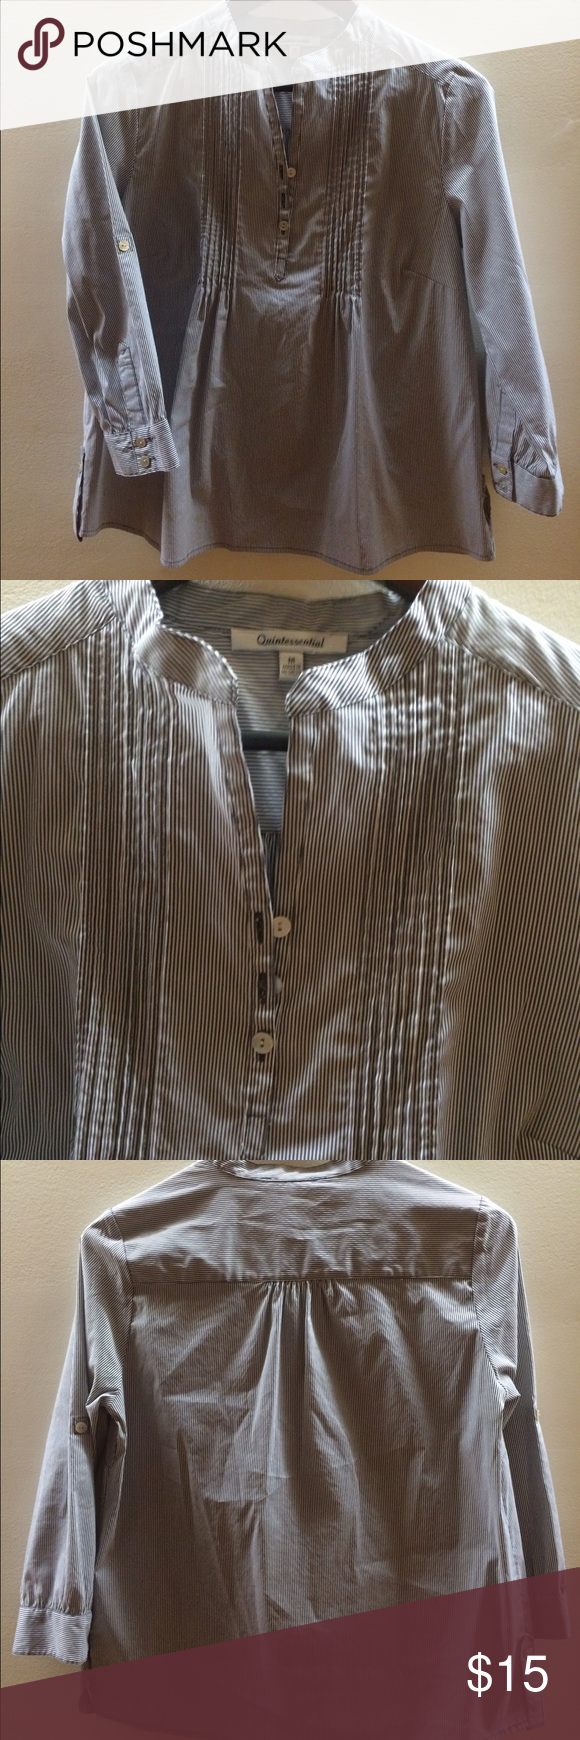 3/4 sleeve blouse with pleats at front Super flattering work shirt! Lots of details like the roll-up sleeve tabs and tab at bottom sides of shirt. quintessential Tops Blouses